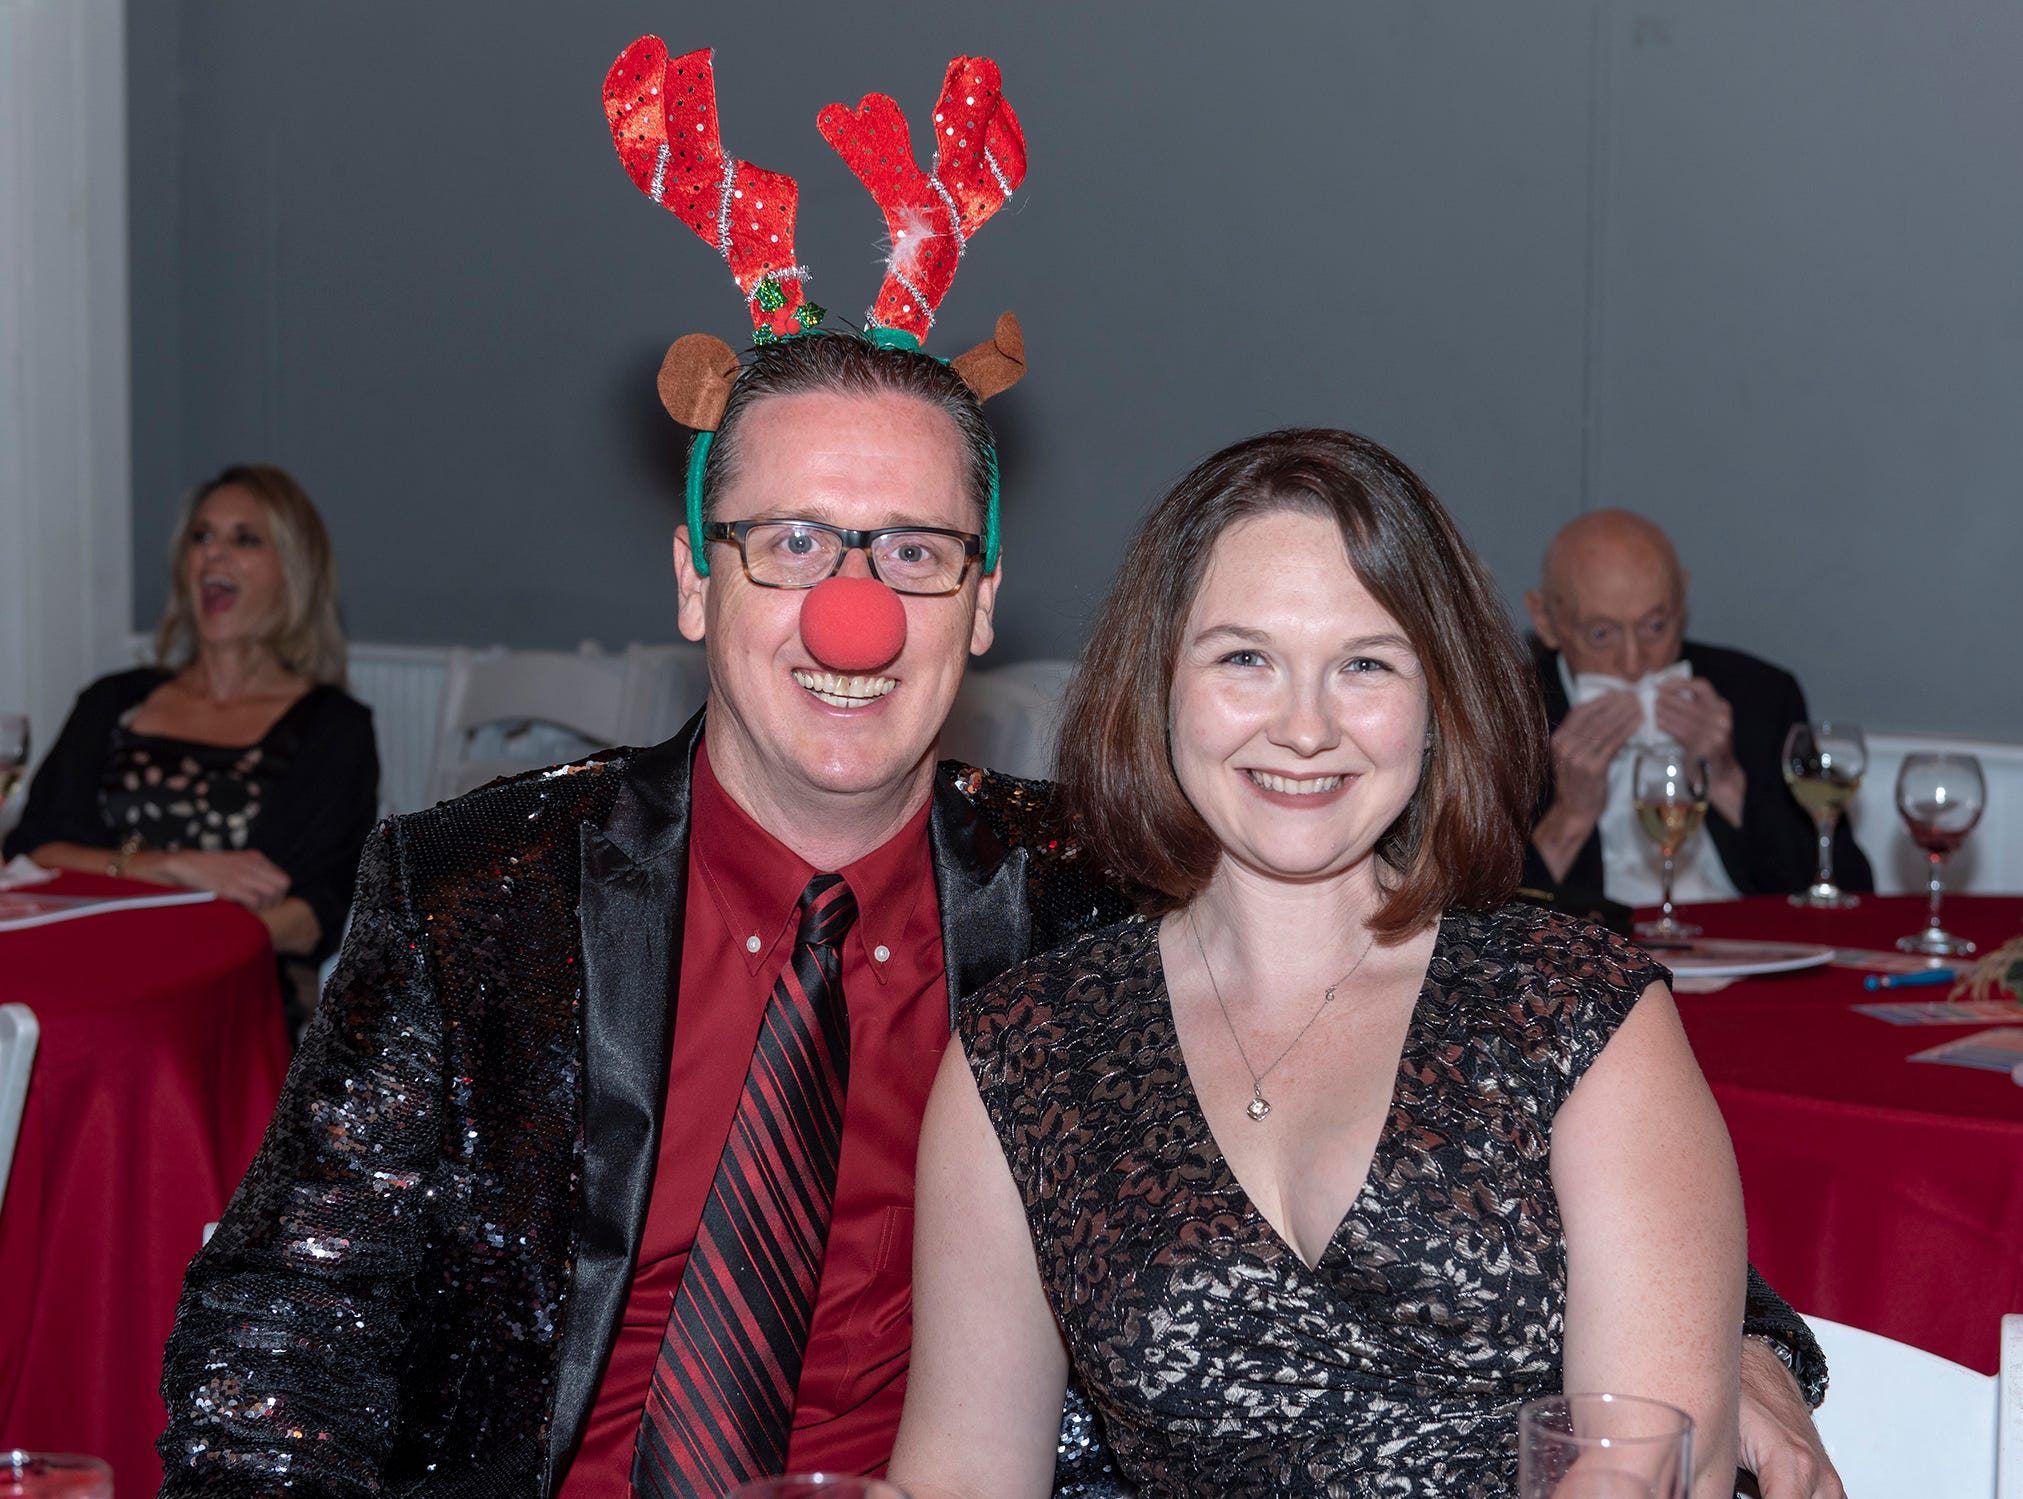 Brian and Laura Moriarty at the Tykes & Teens Festival of Trees & Lights.